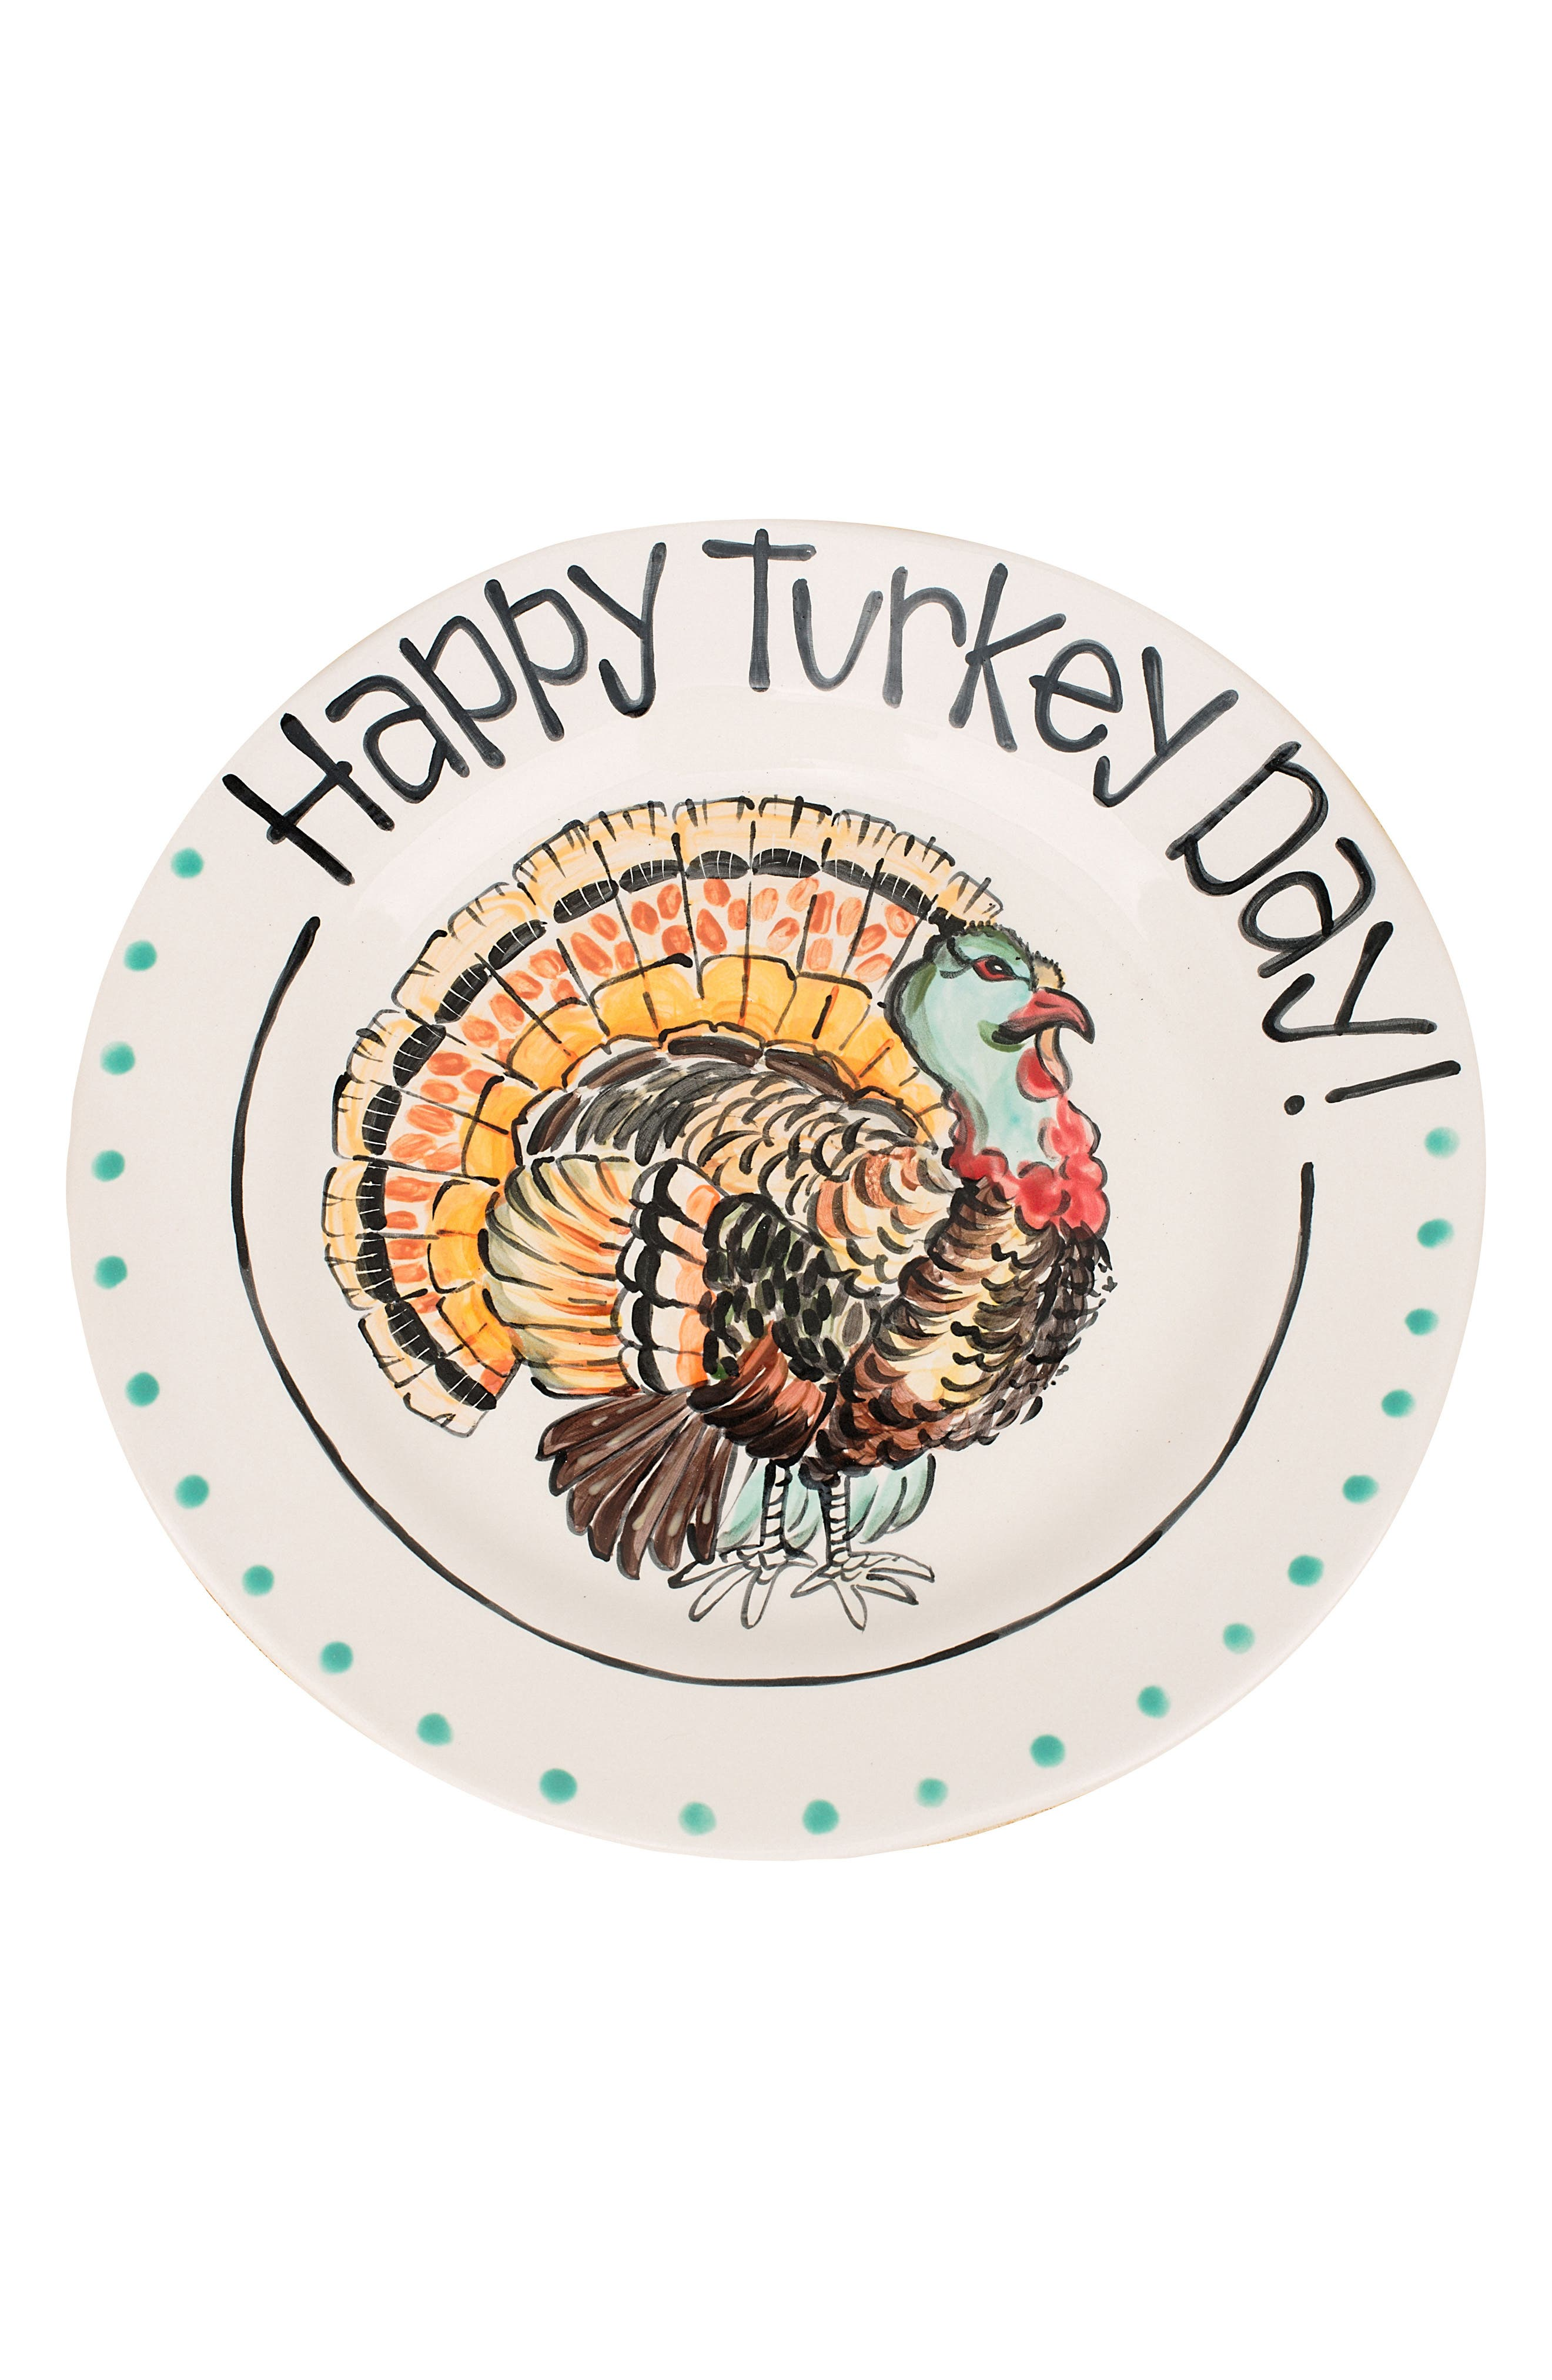 Happy Turkey Day Plate,                         Main,                         color, 900